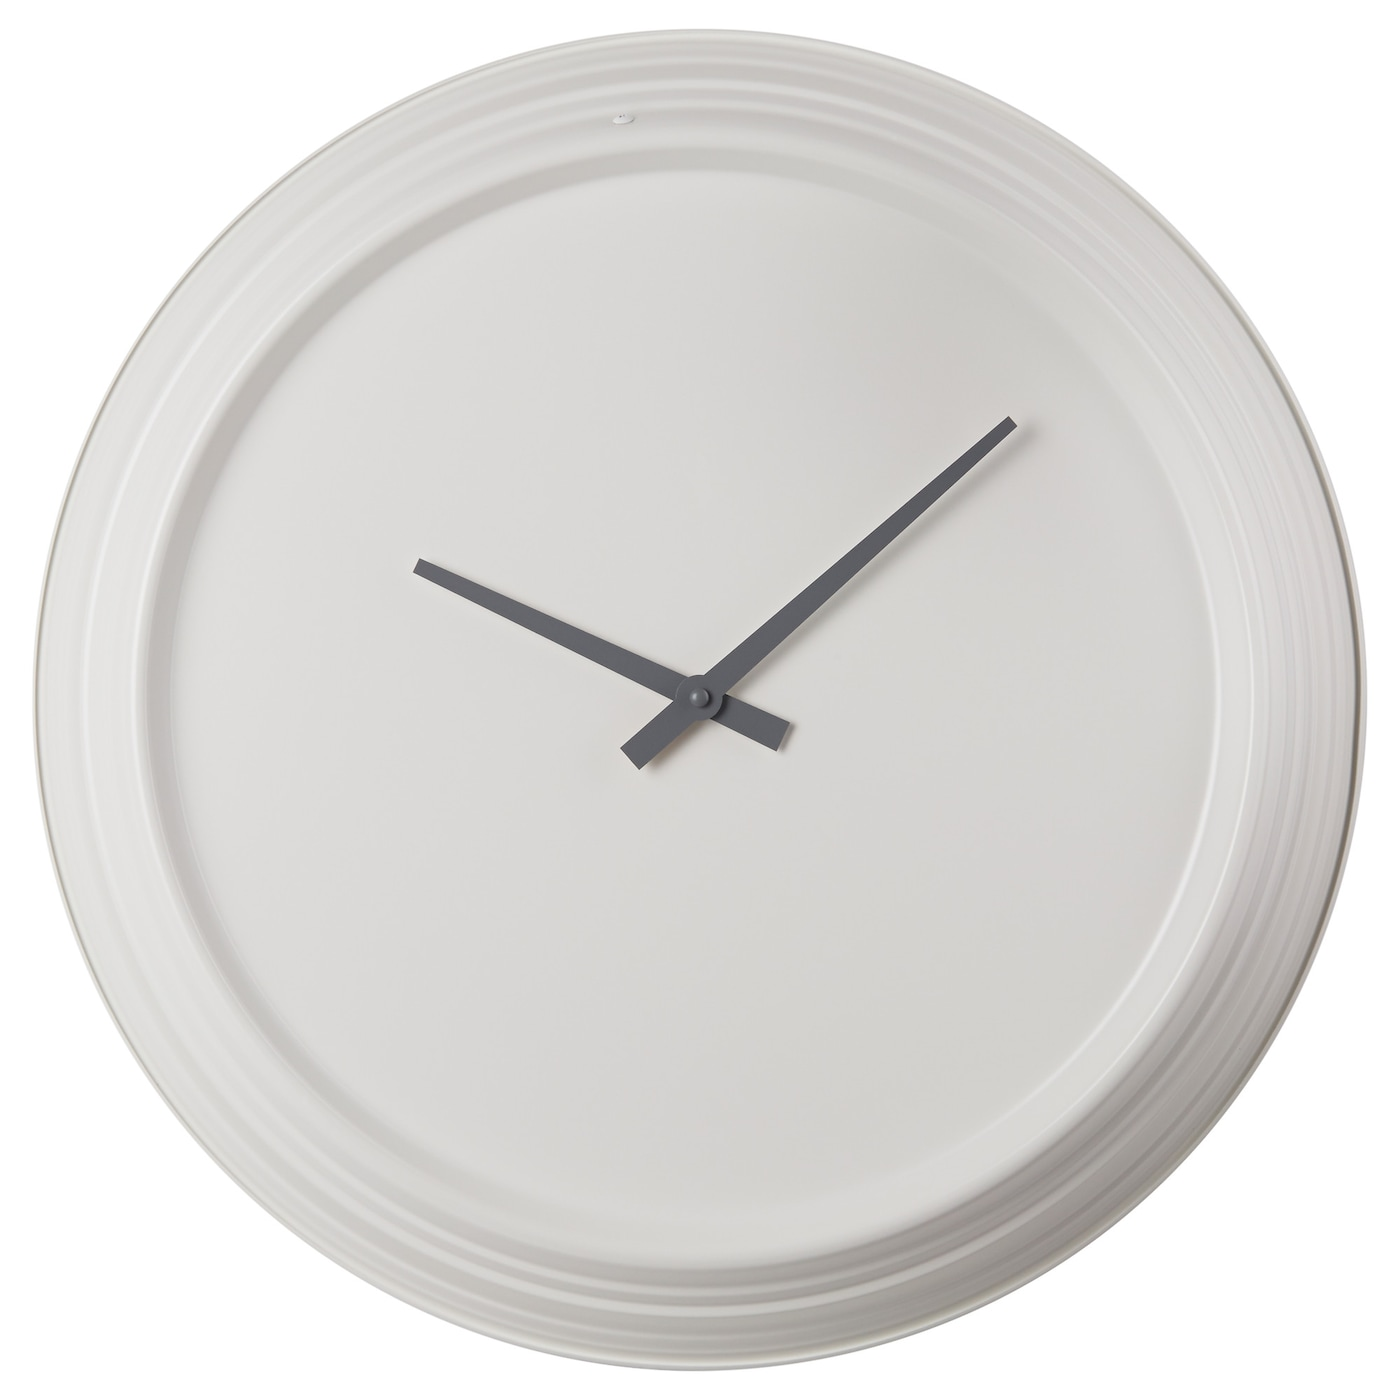 IKEA PLURRA wall clock